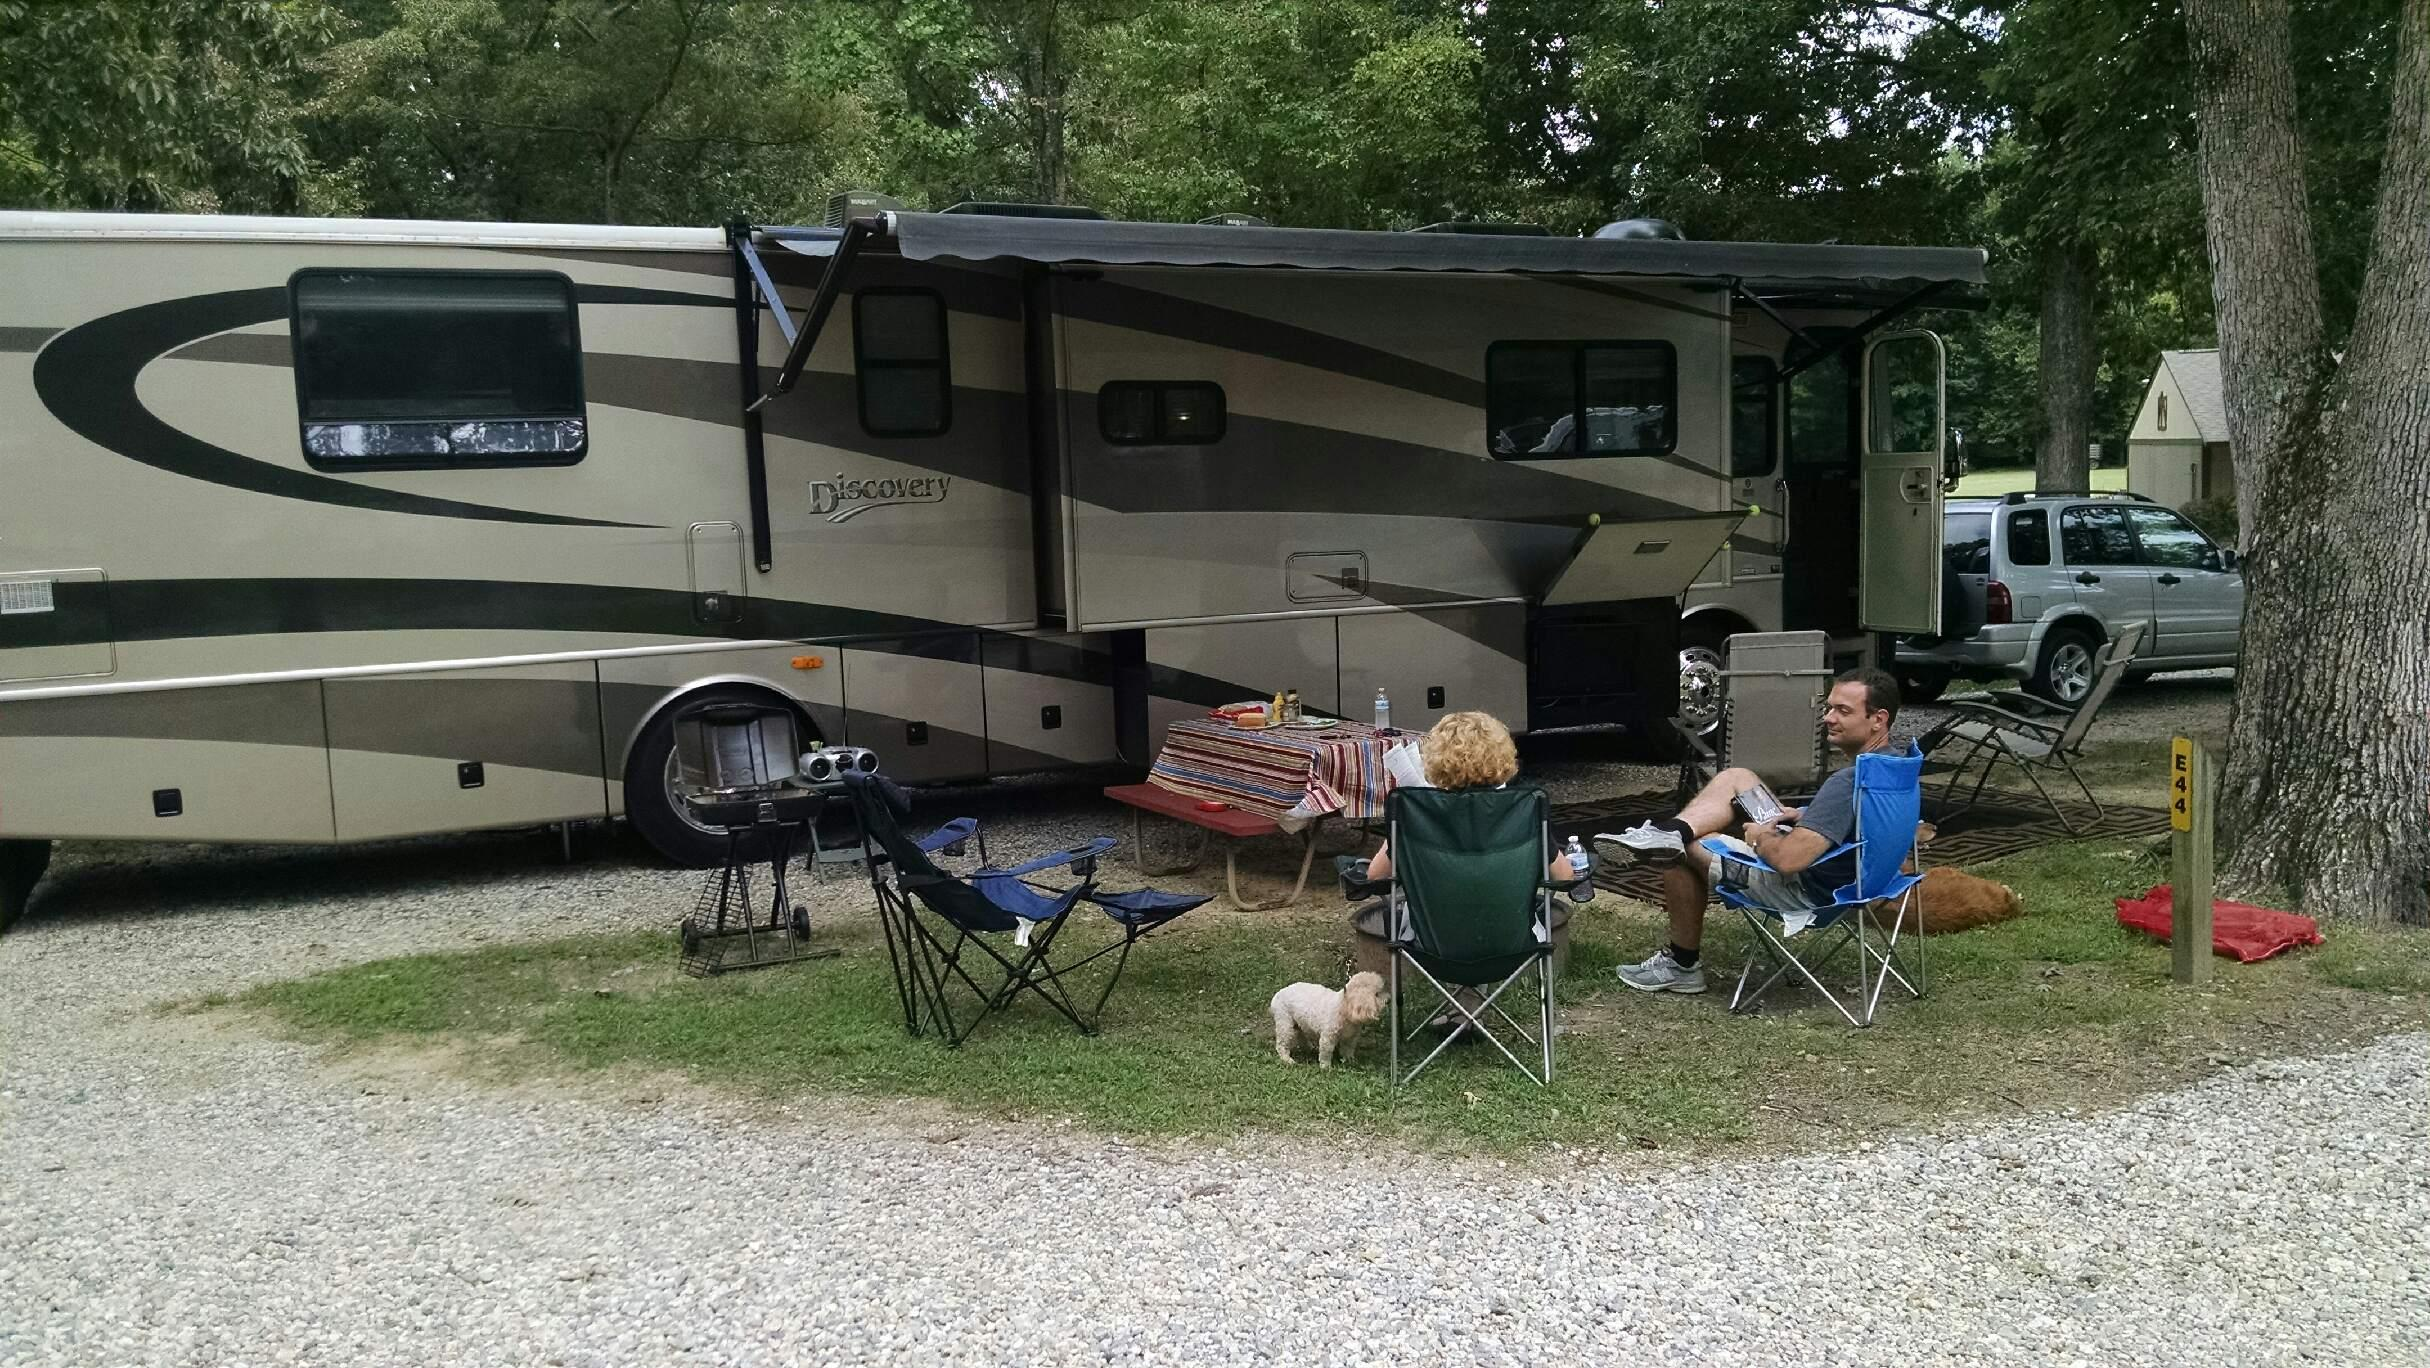 Living the good life back at the campsite.